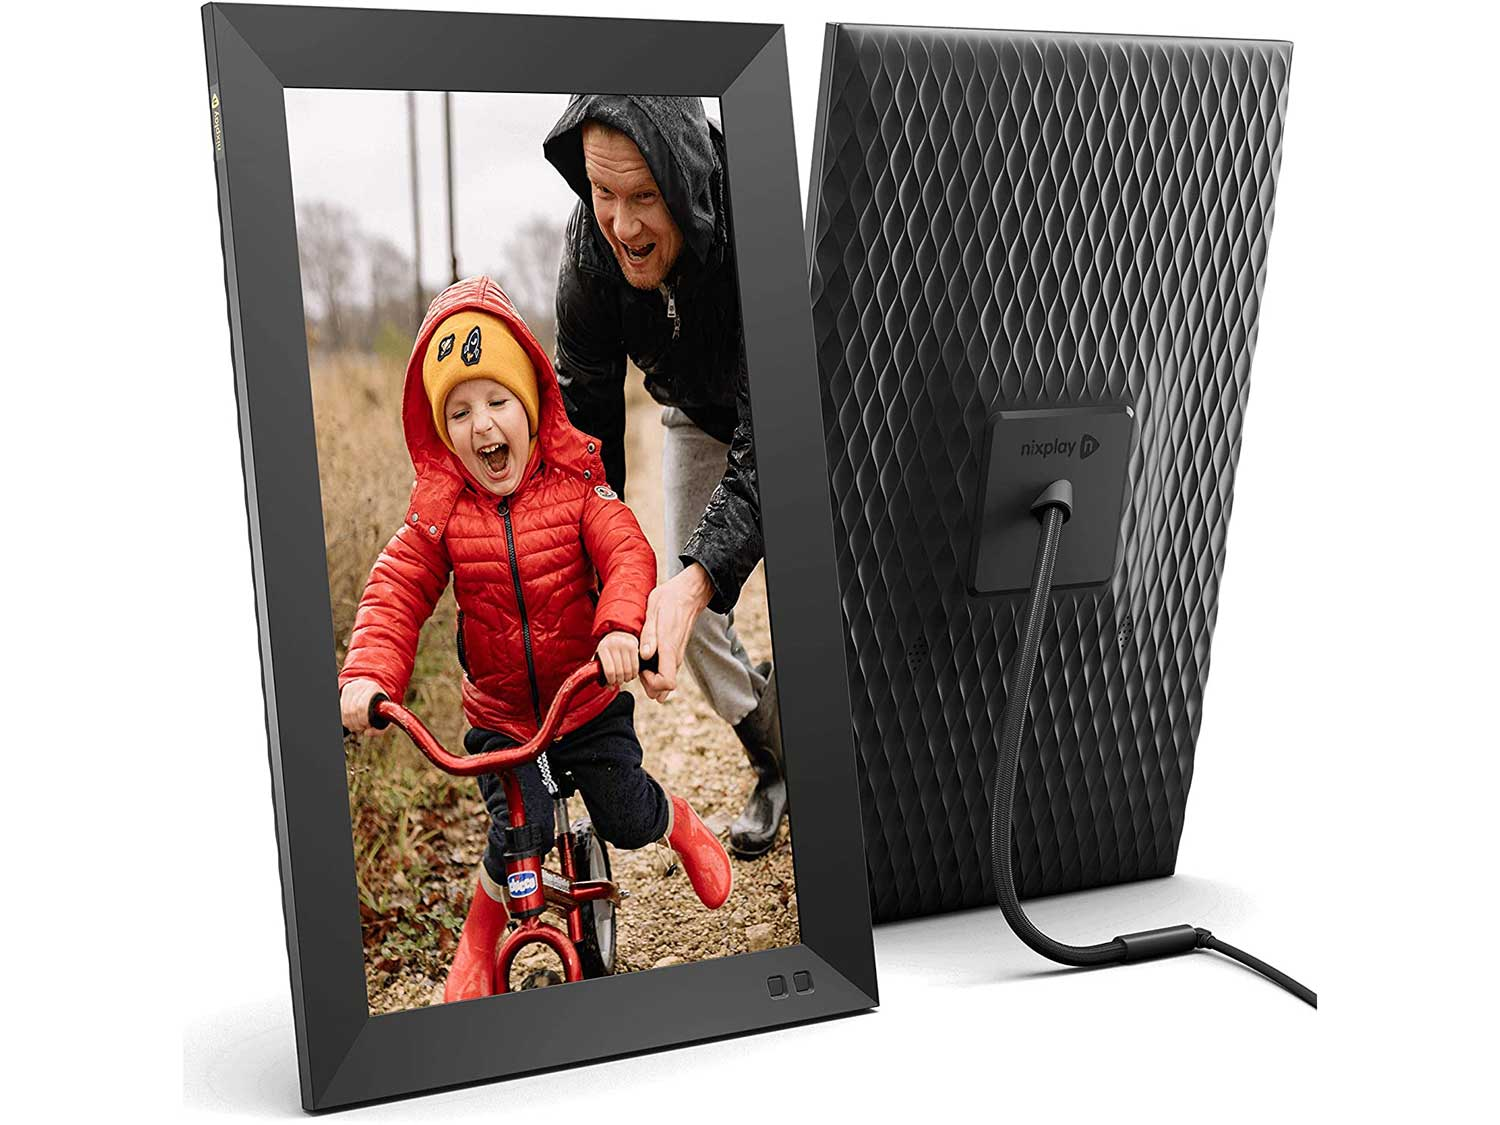 Nixplay Smart Digital Picture Frame 15.6 Inch, Share Video Clips and Photos Instantly via App or E-Mail